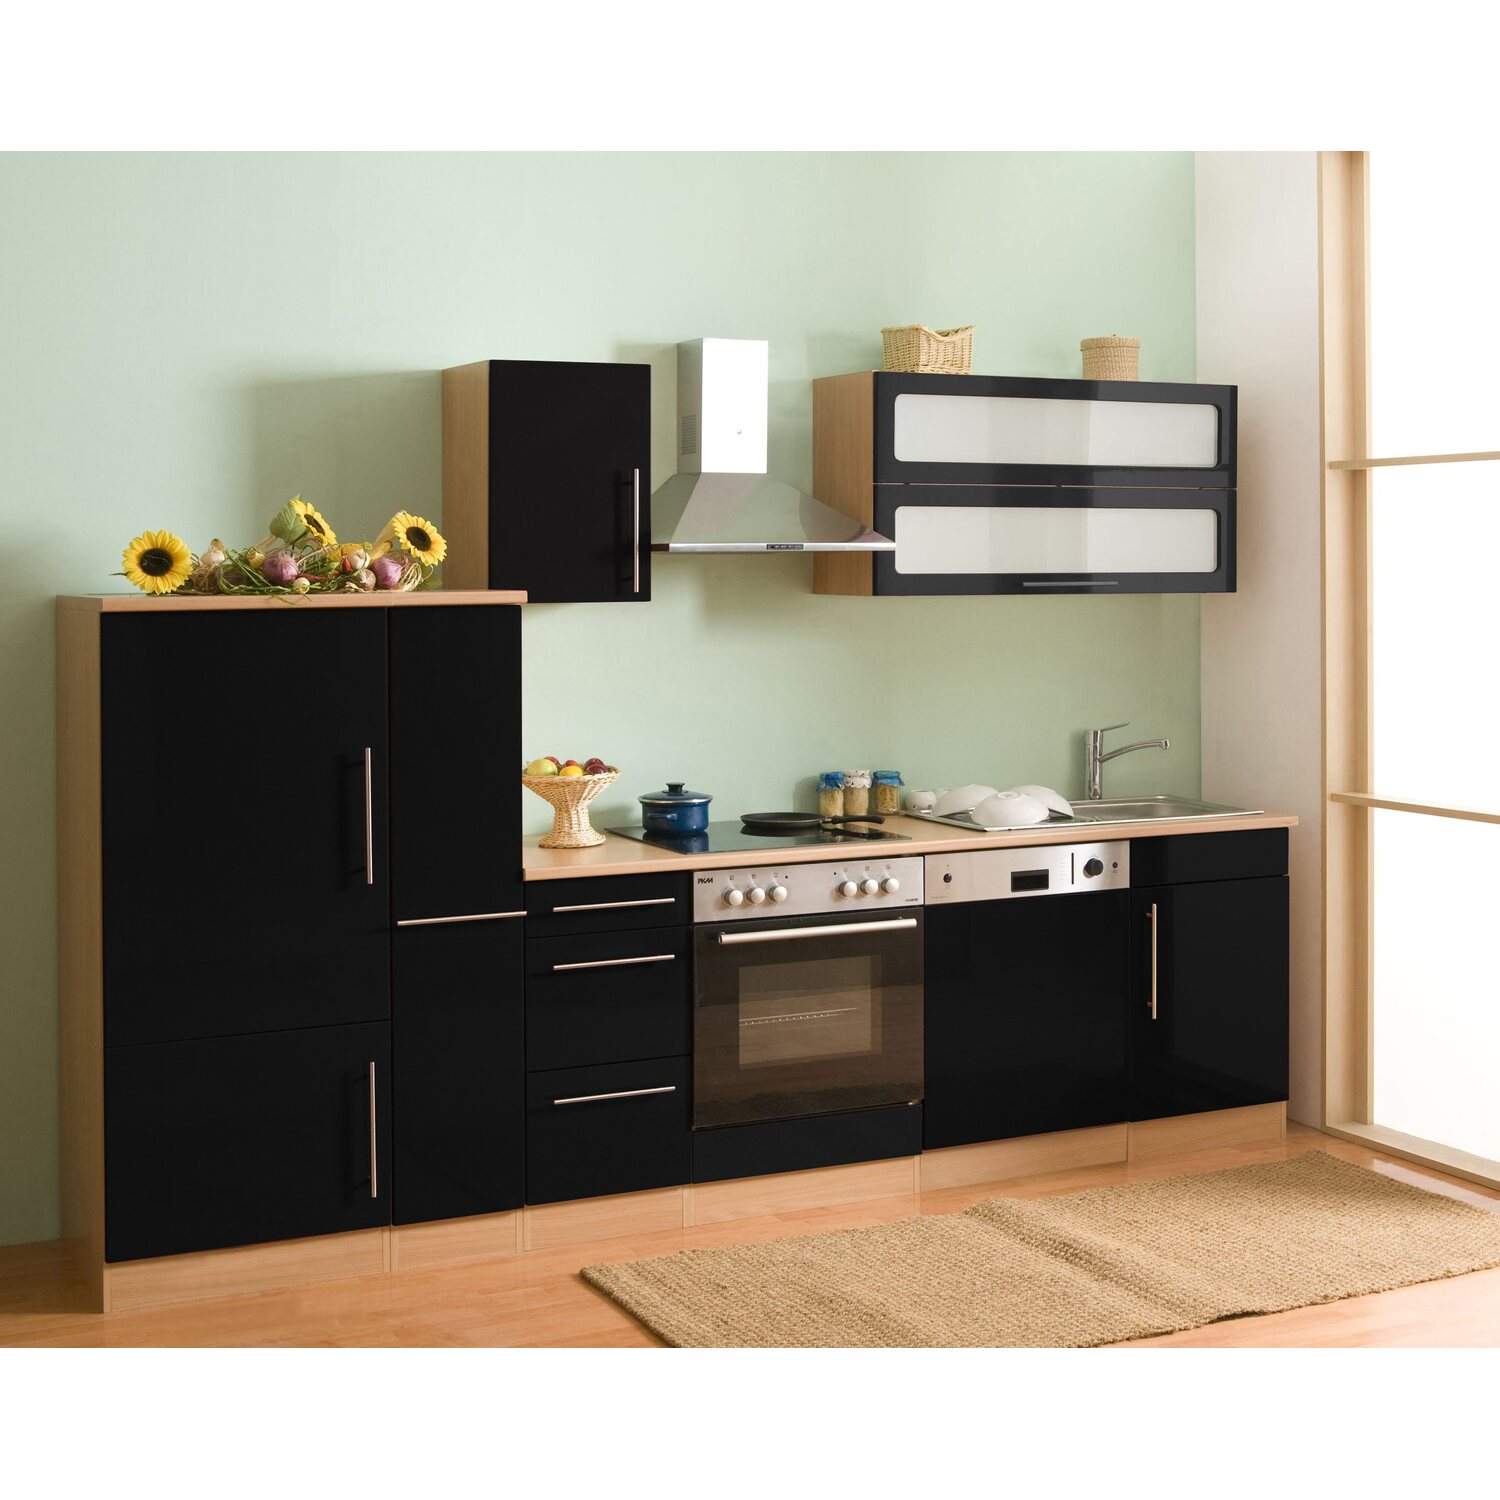 mebasa k chenzeile cucina 300 cm komplett mit ger ten schwarz kaufen bei obi. Black Bedroom Furniture Sets. Home Design Ideas